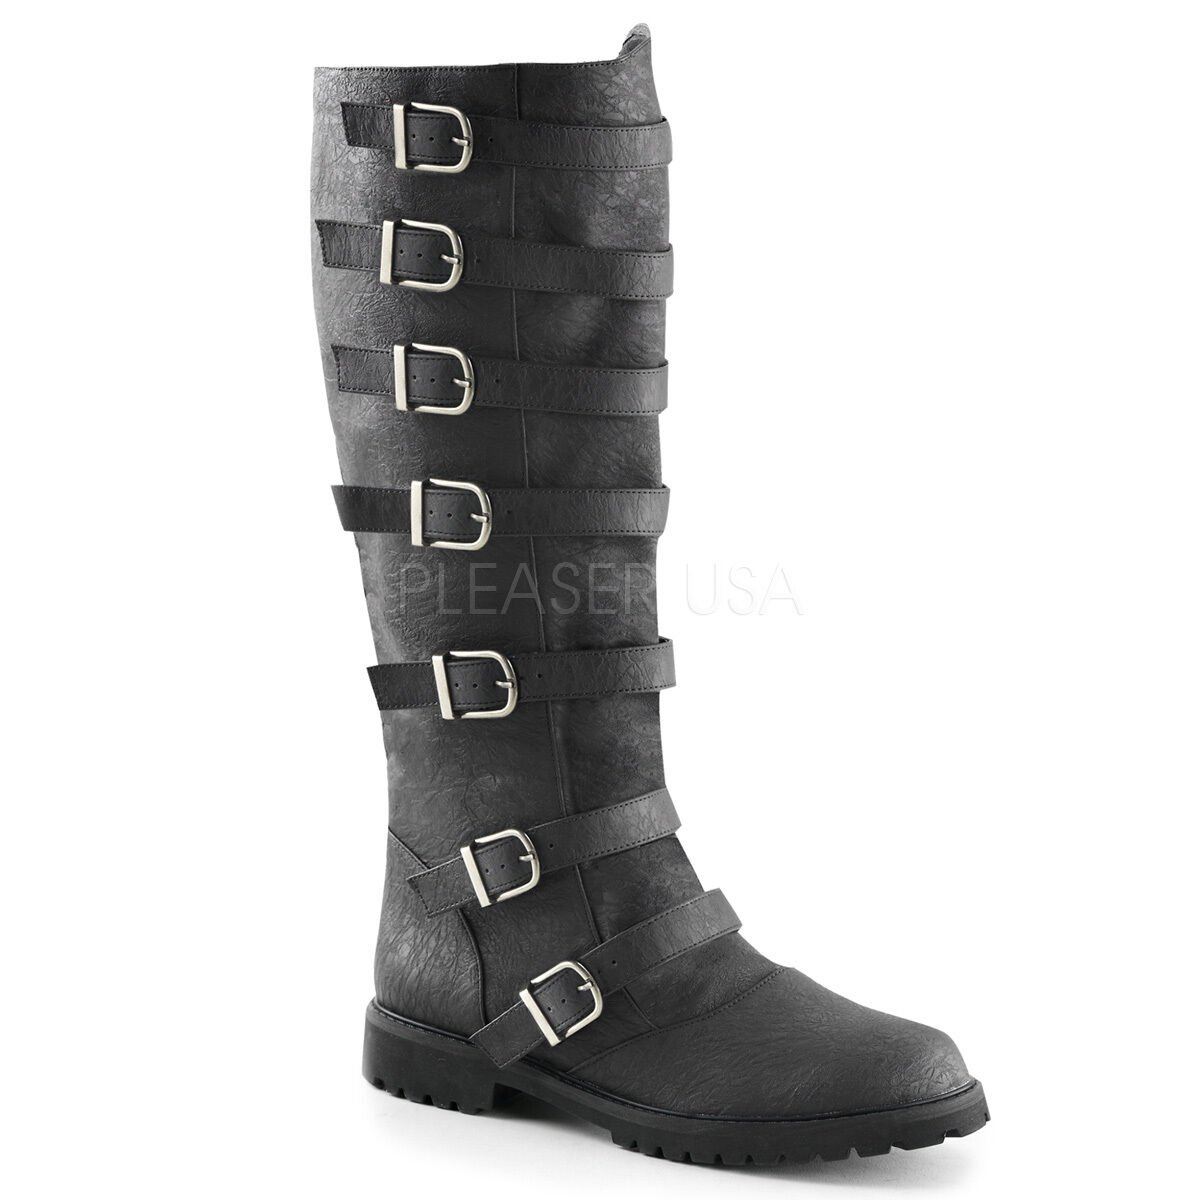 Black Steampunk Burner Boots Buckles Space Pirate Medieval Costume Mens 9 10 11